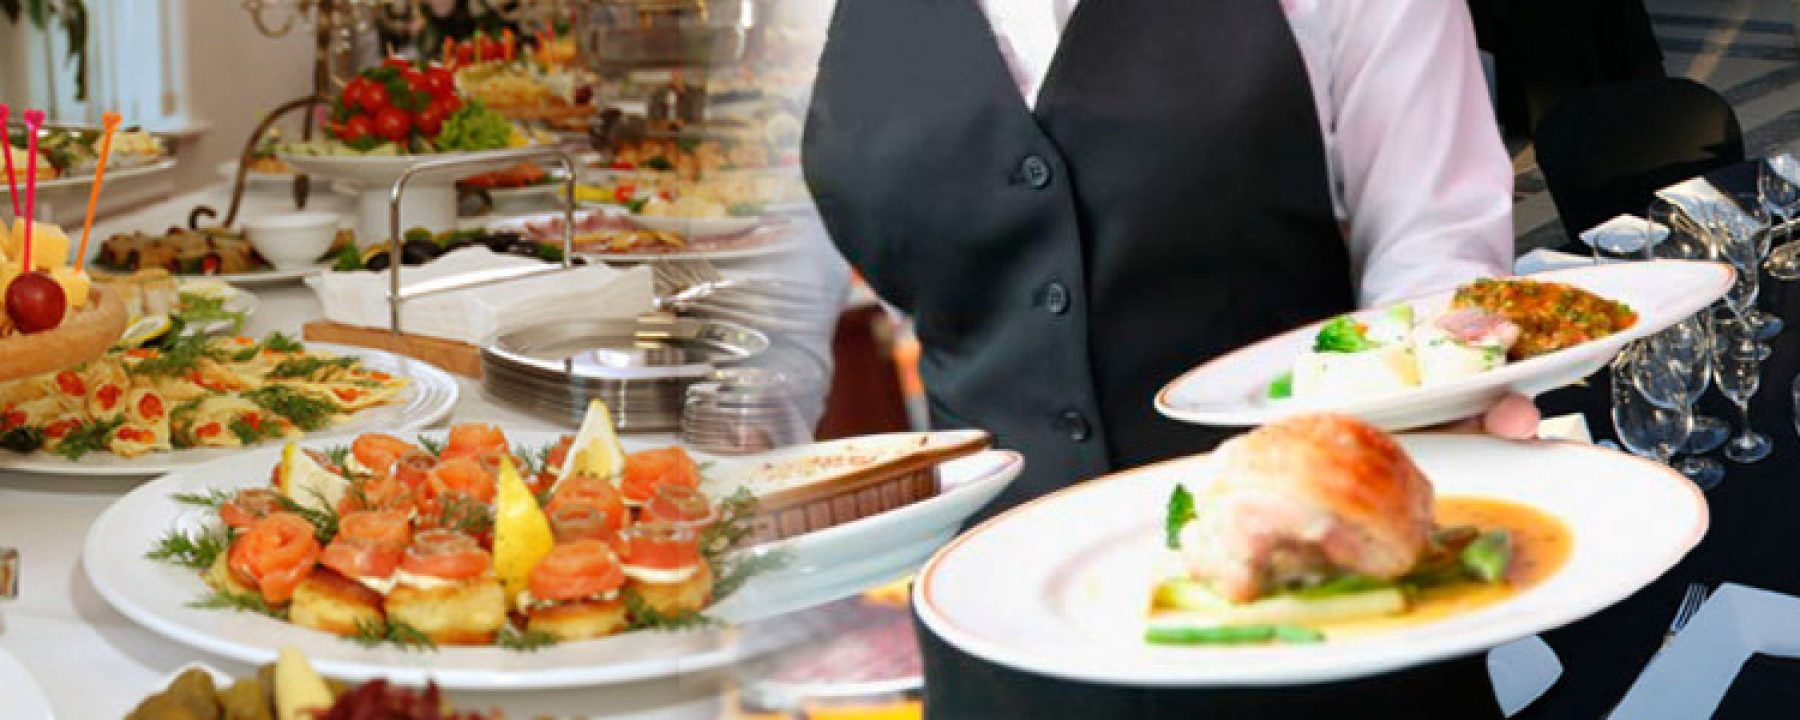 Wedding & Corporate Halal Buffet Catering